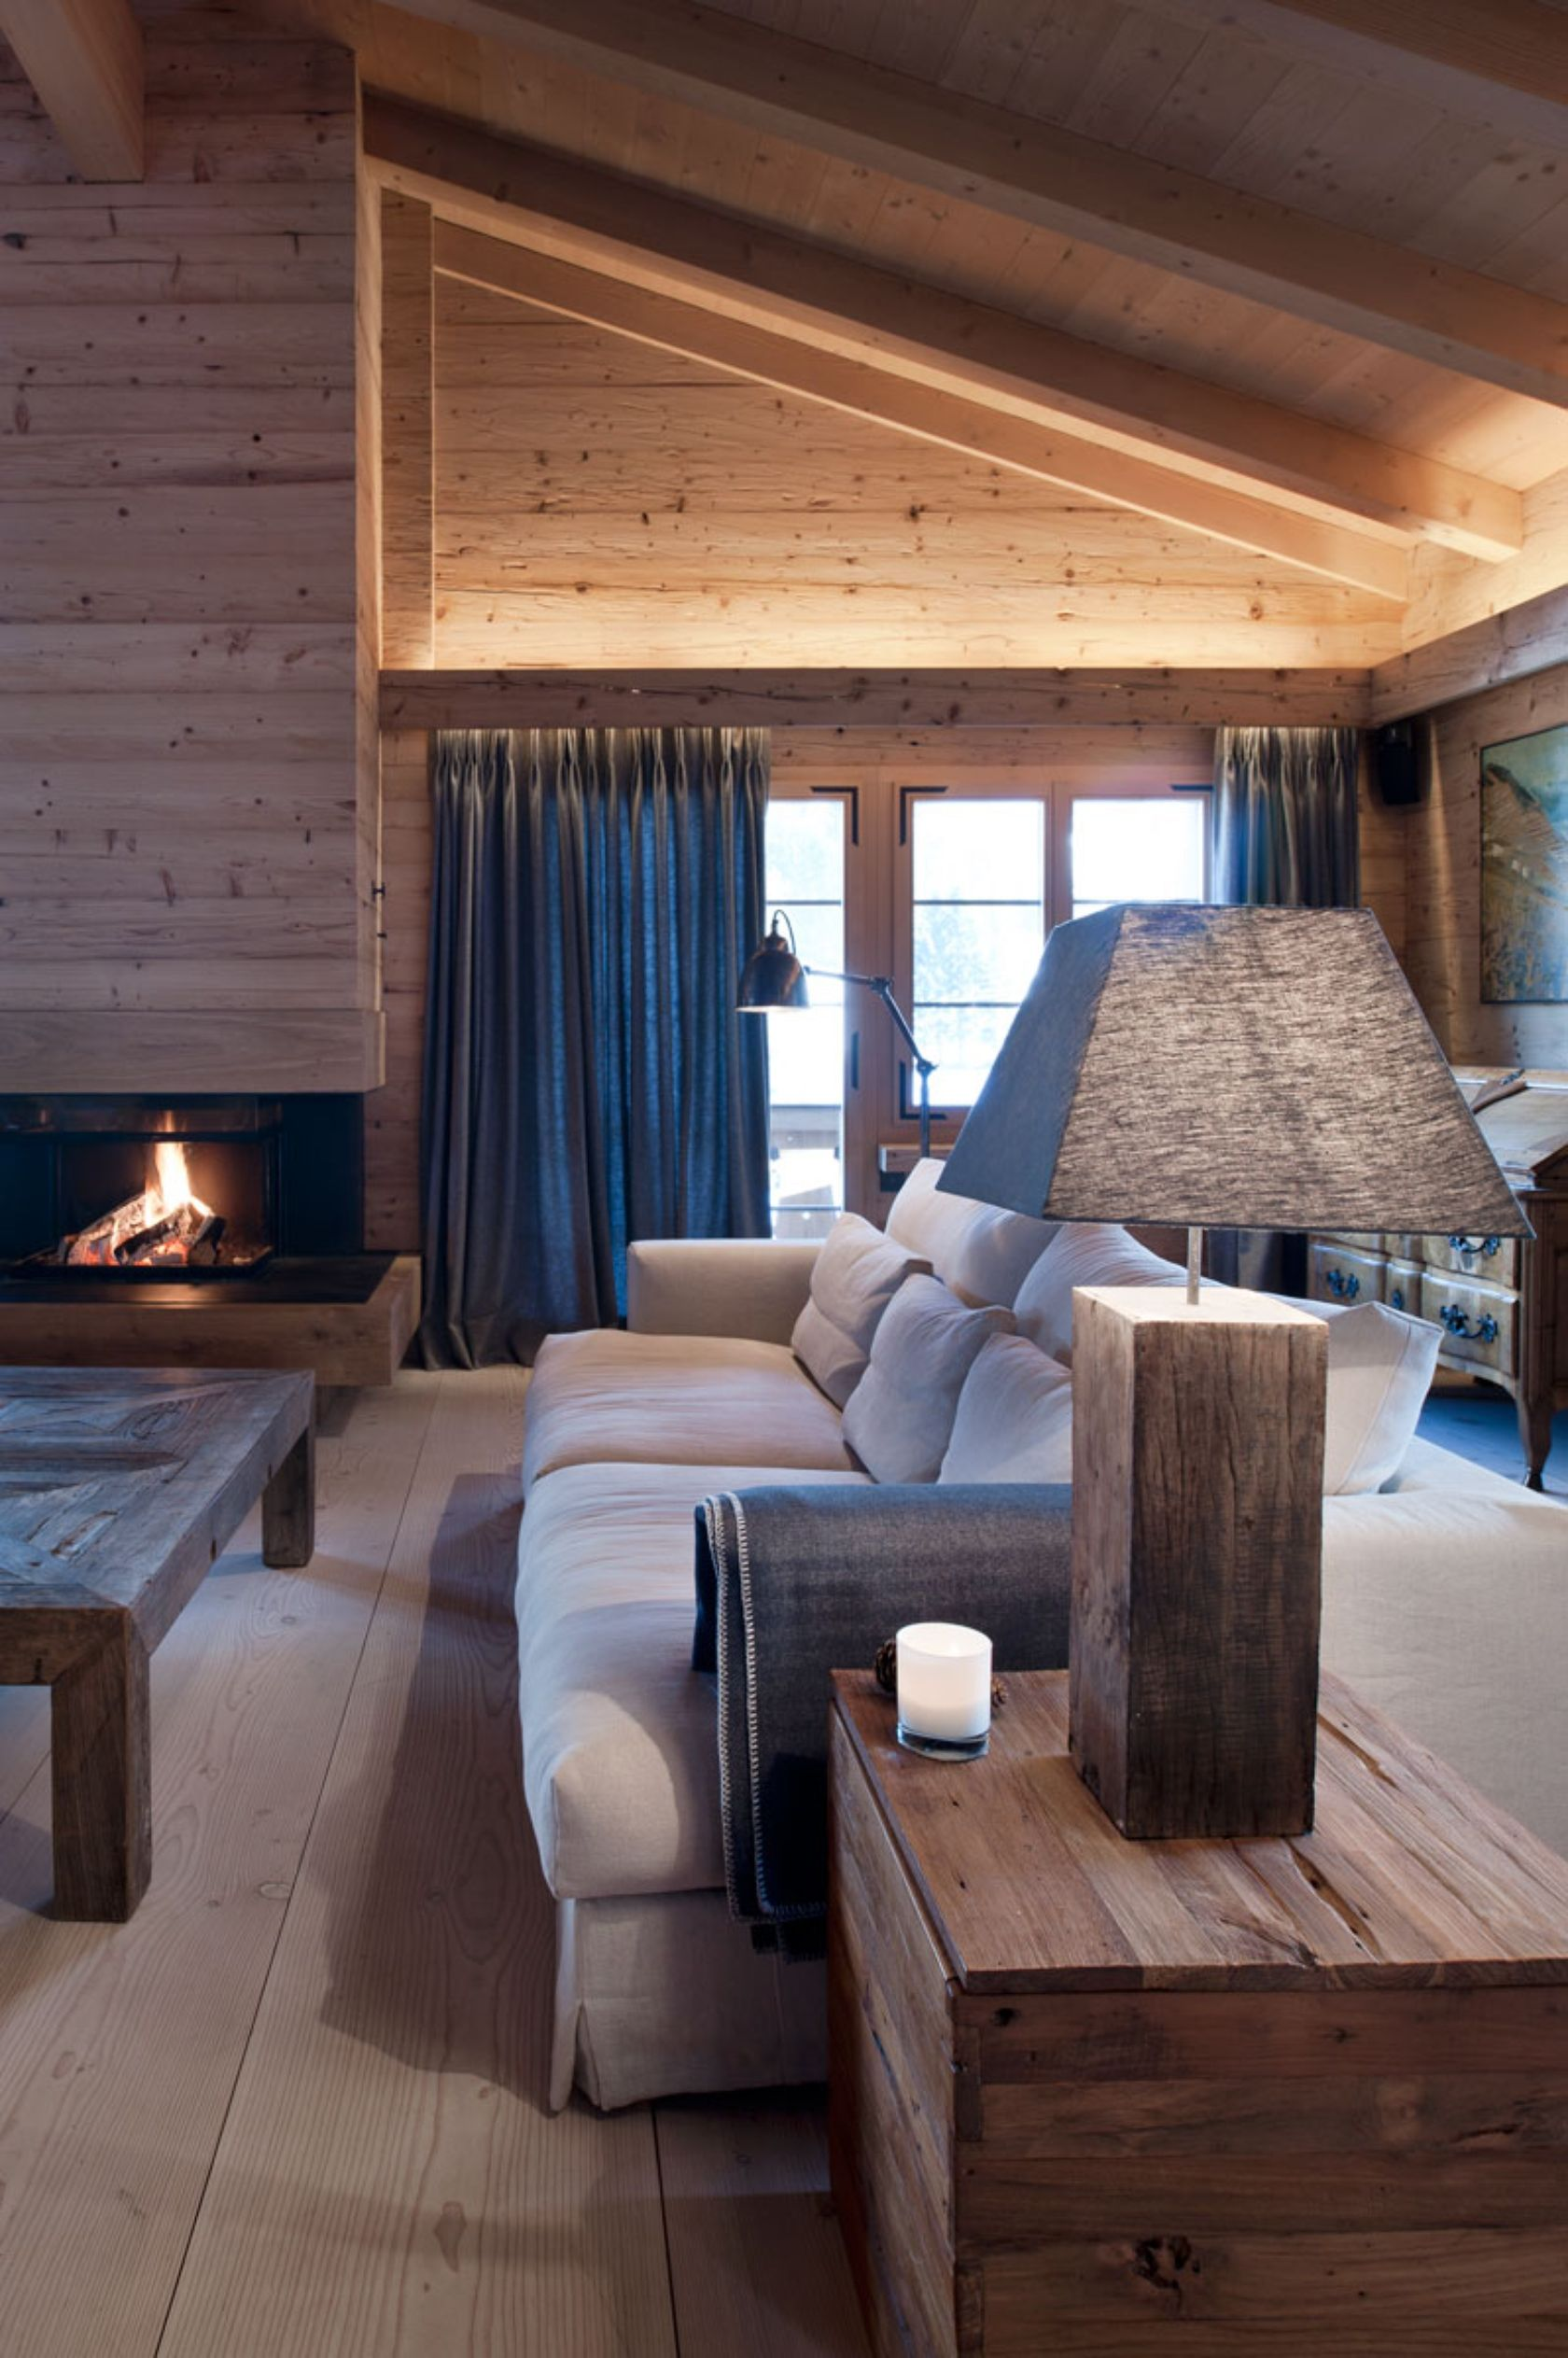 Chalet Gstaad & Chalet Gstaad | Beach House | Pinterest | Swiss chalet and Interiors